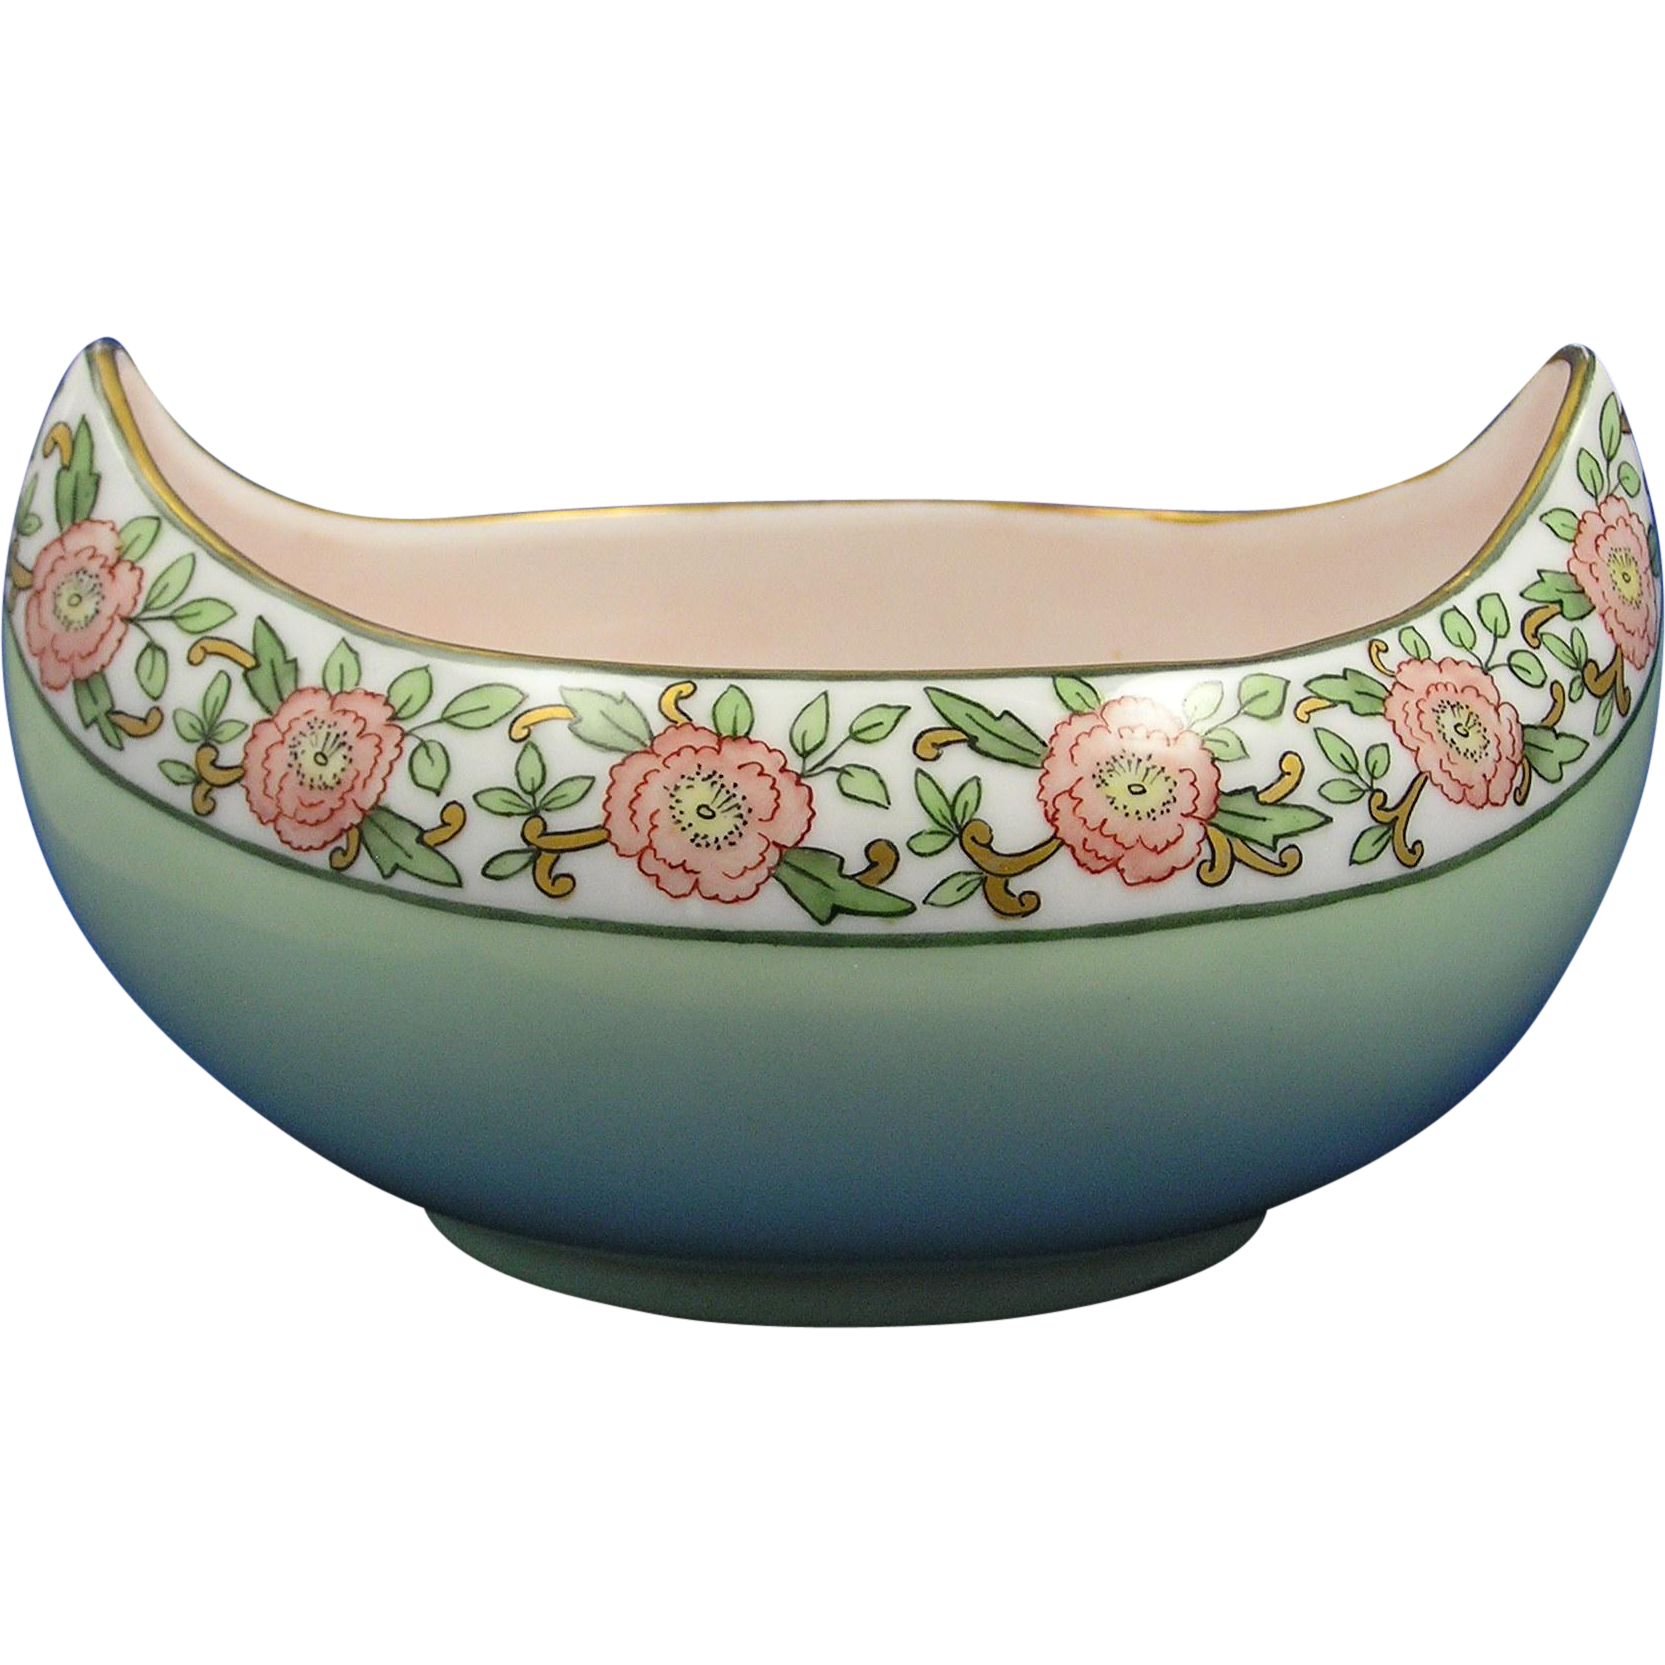 Favorite Bavaria Arts & Crafts Floral Motif Bowl (c.1910-1930)